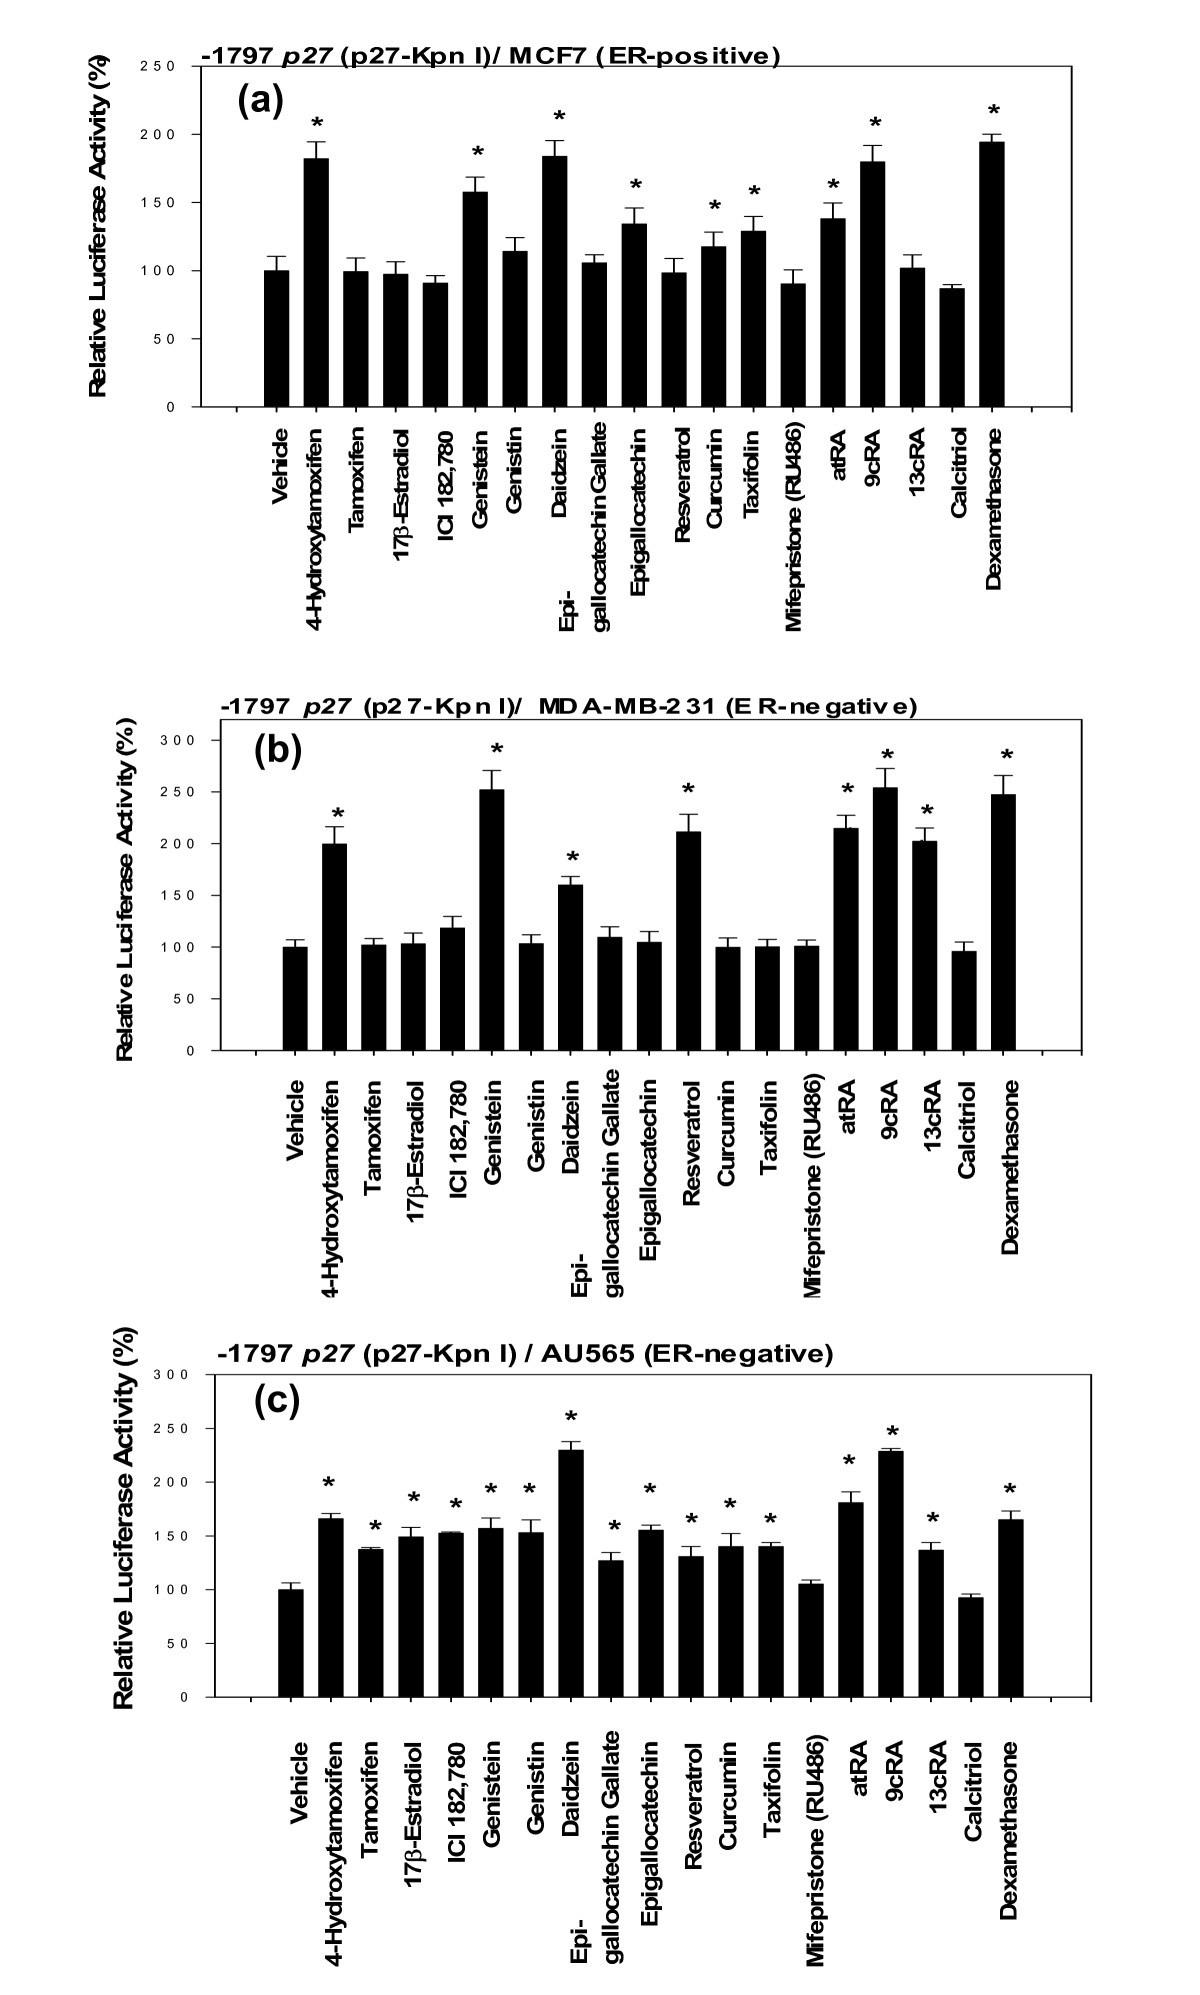 http://static-content.springer.com/image/art%3A10.1186%2F1475-2867-6-20/MediaObjects/12935_2006_Article_156_Fig2_HTML.jpg